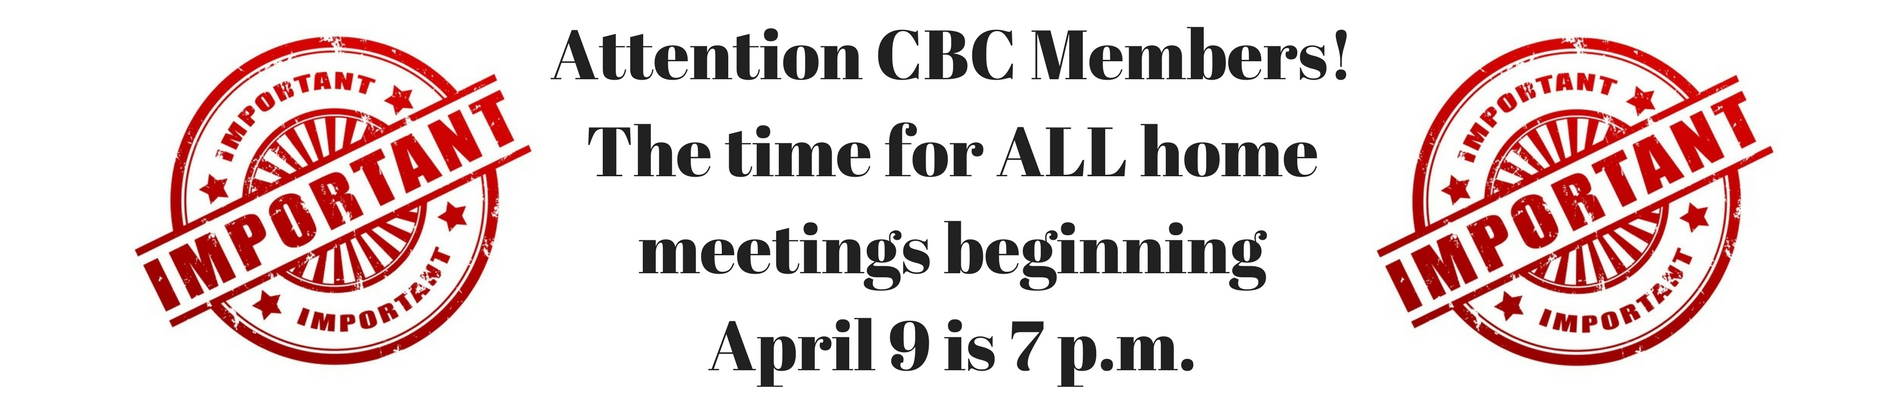 Central MembersPlease note that the time for ALL home meetings beginning Apr. 9 is 7 p.m.